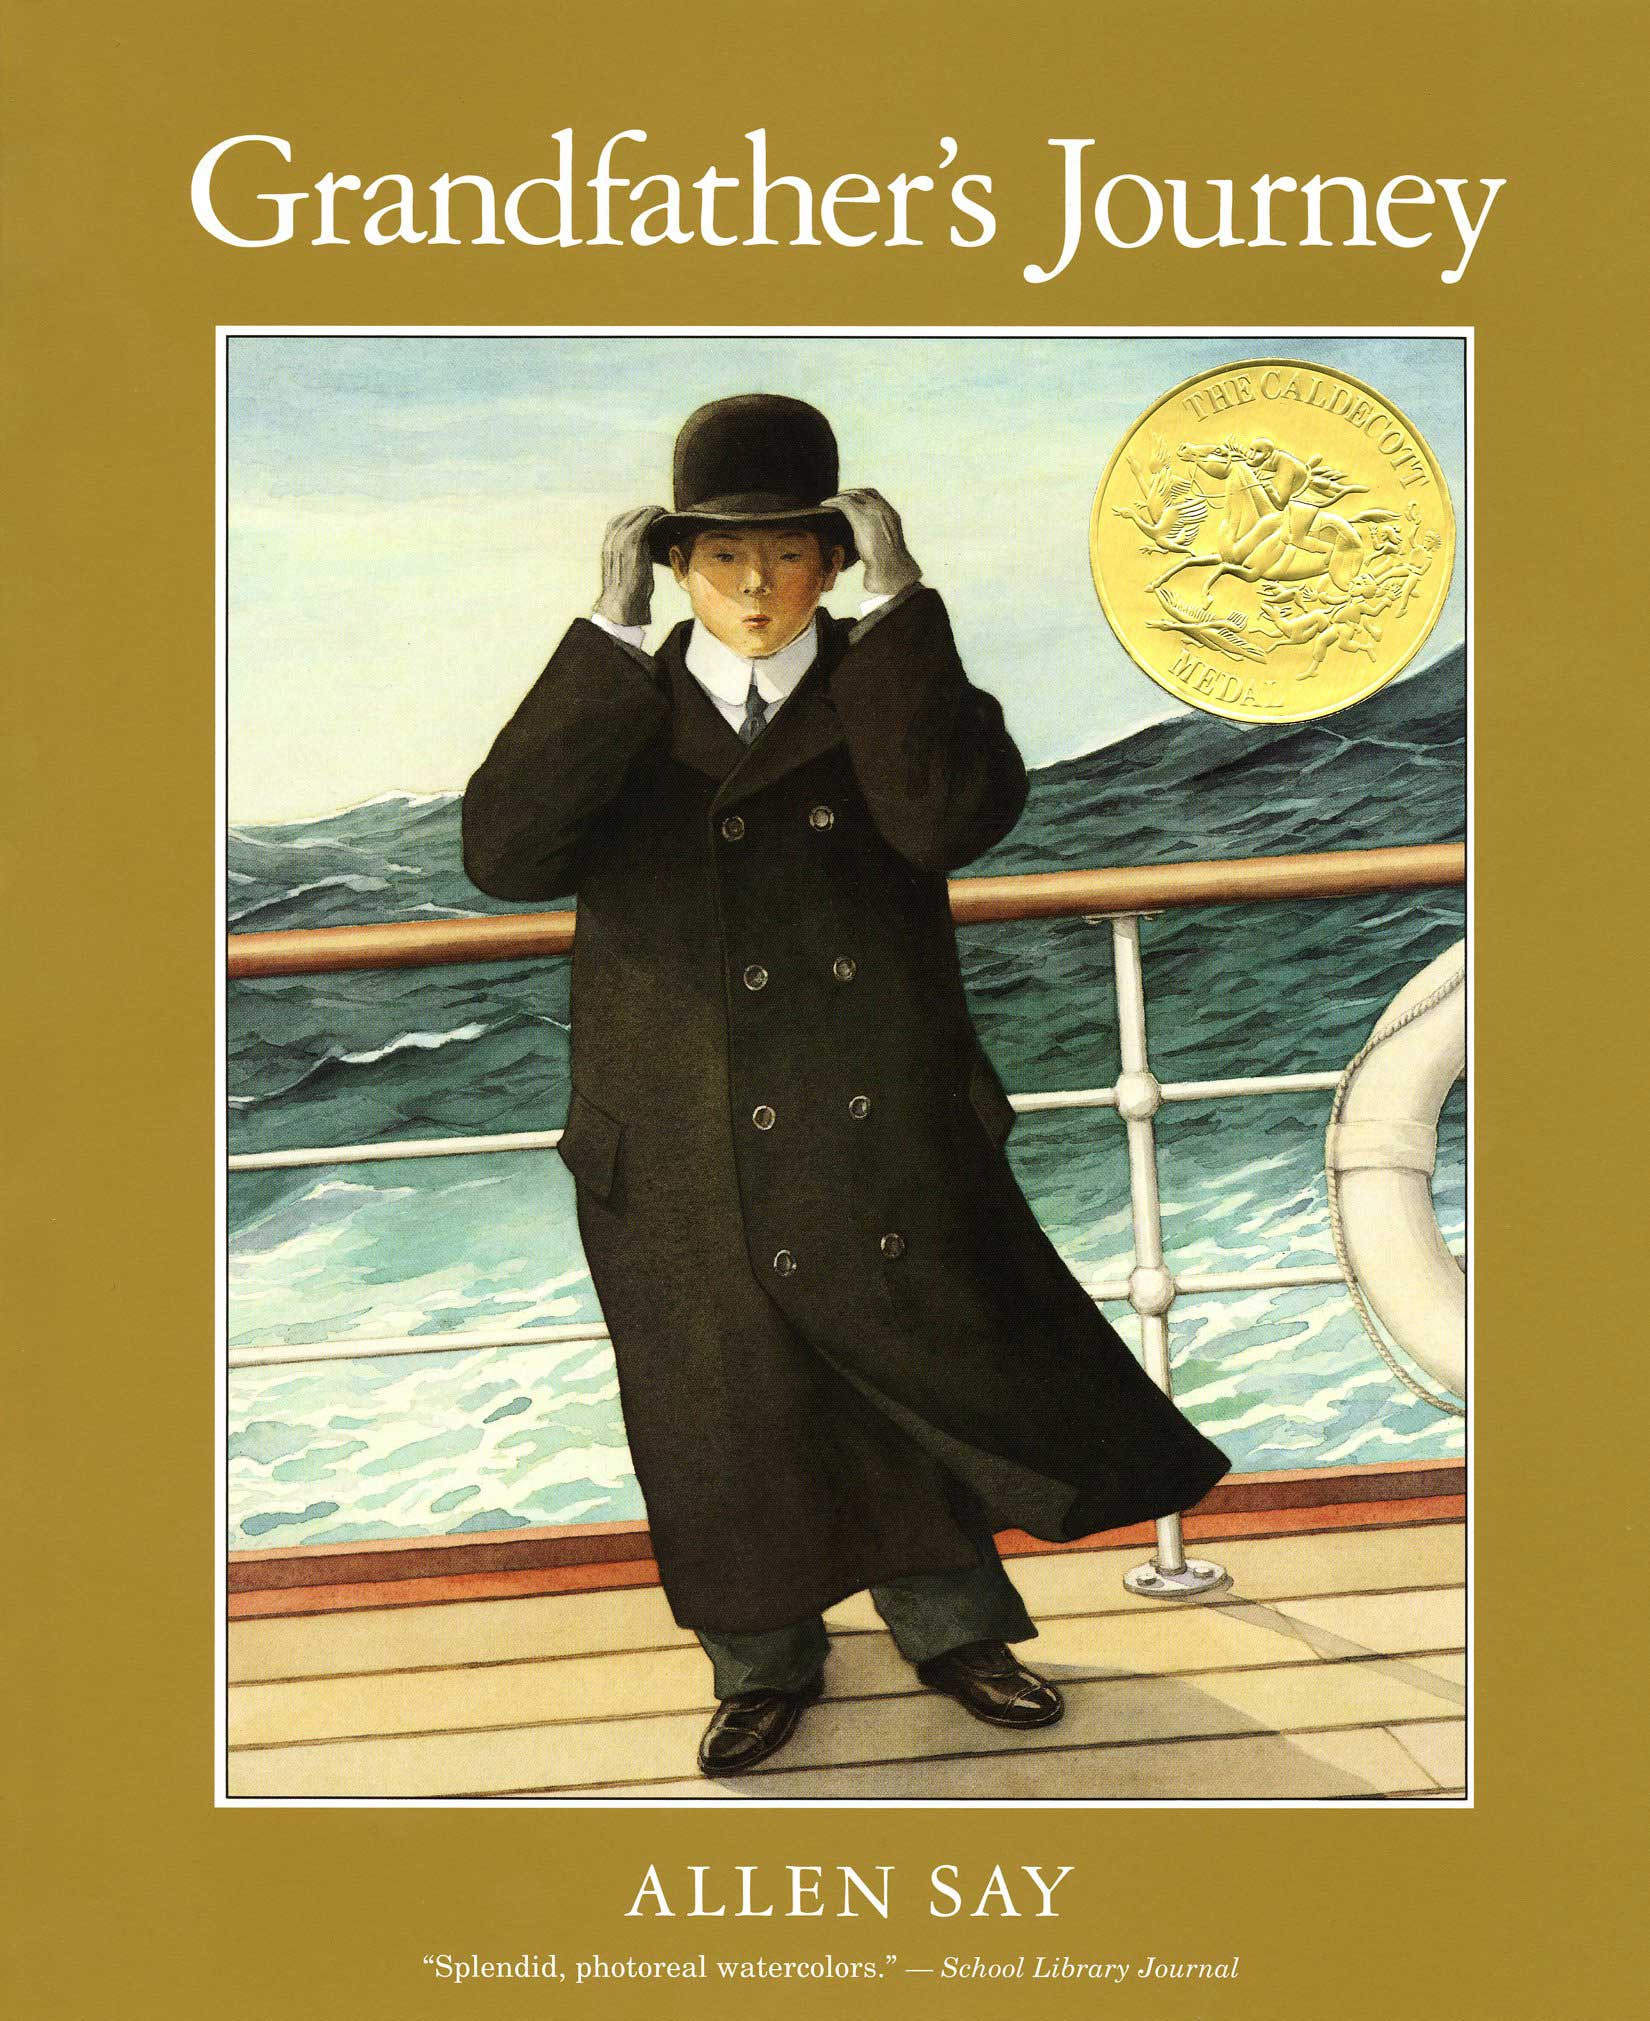 Grandfather's Journey, by Allen Say.                                                                                                                            The author chronicles his grandfather's journey from Japan to California and back again, pairing it with delicate, warm art.                                                                                                                            Buy now: Grandfather's Journey